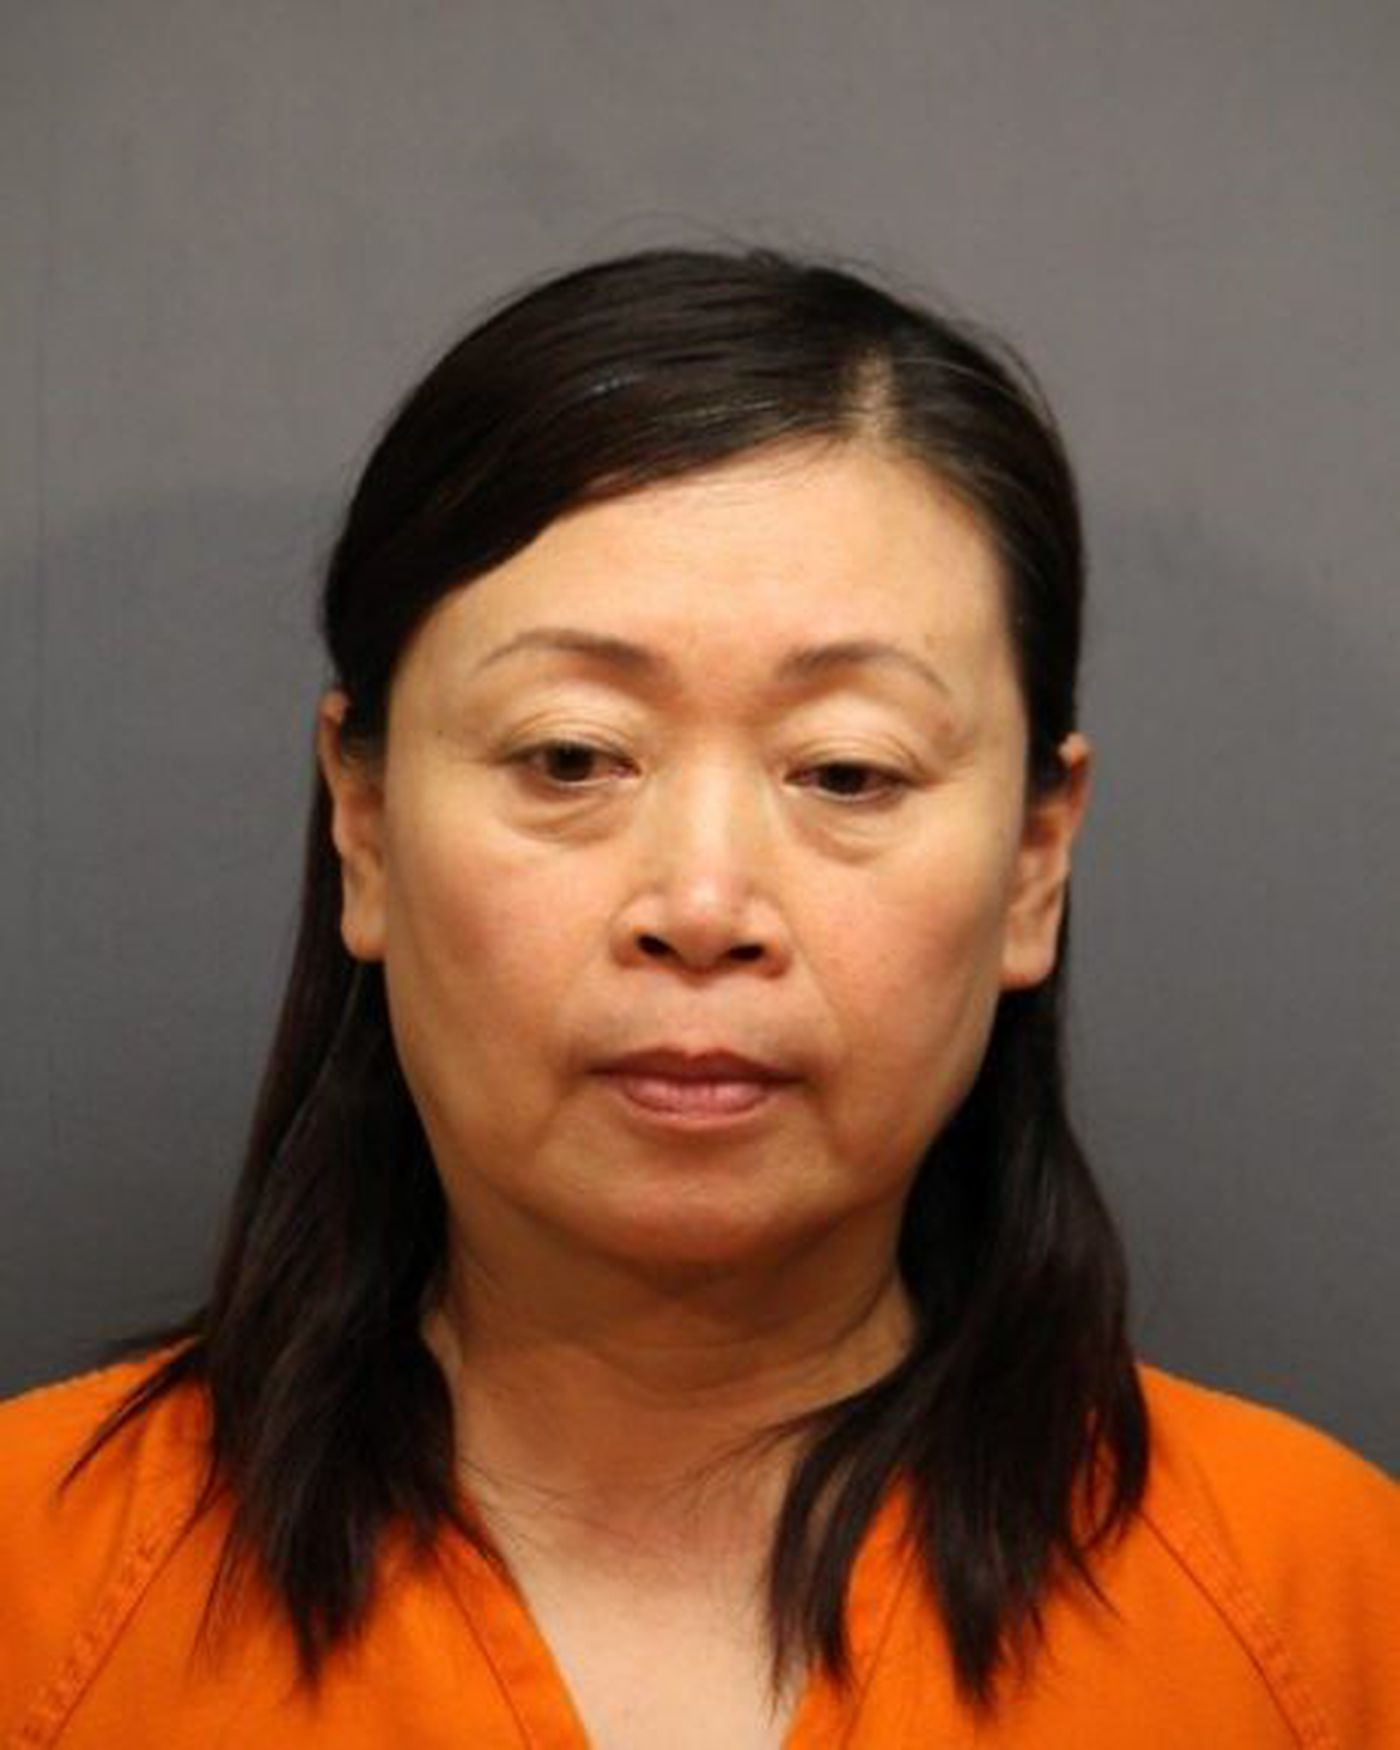 Two women arrested on prostitution charges at Lawton massage